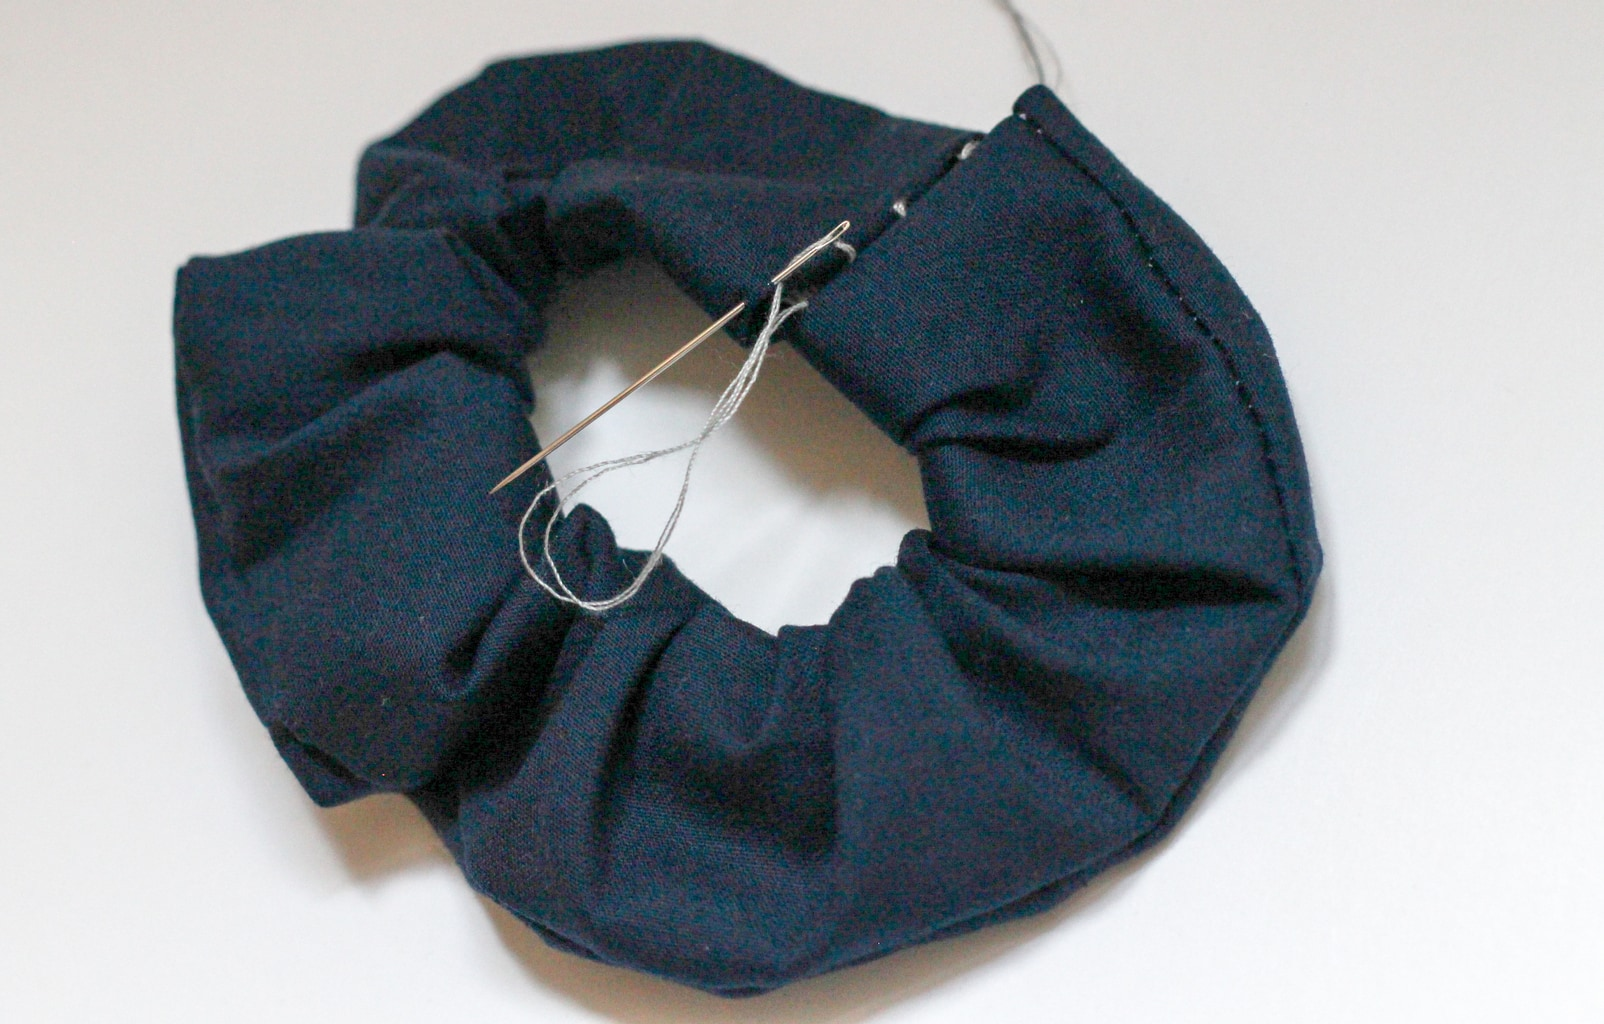 DIY scrunchies: Sew the ends of the scrunchie together with a needle and thread